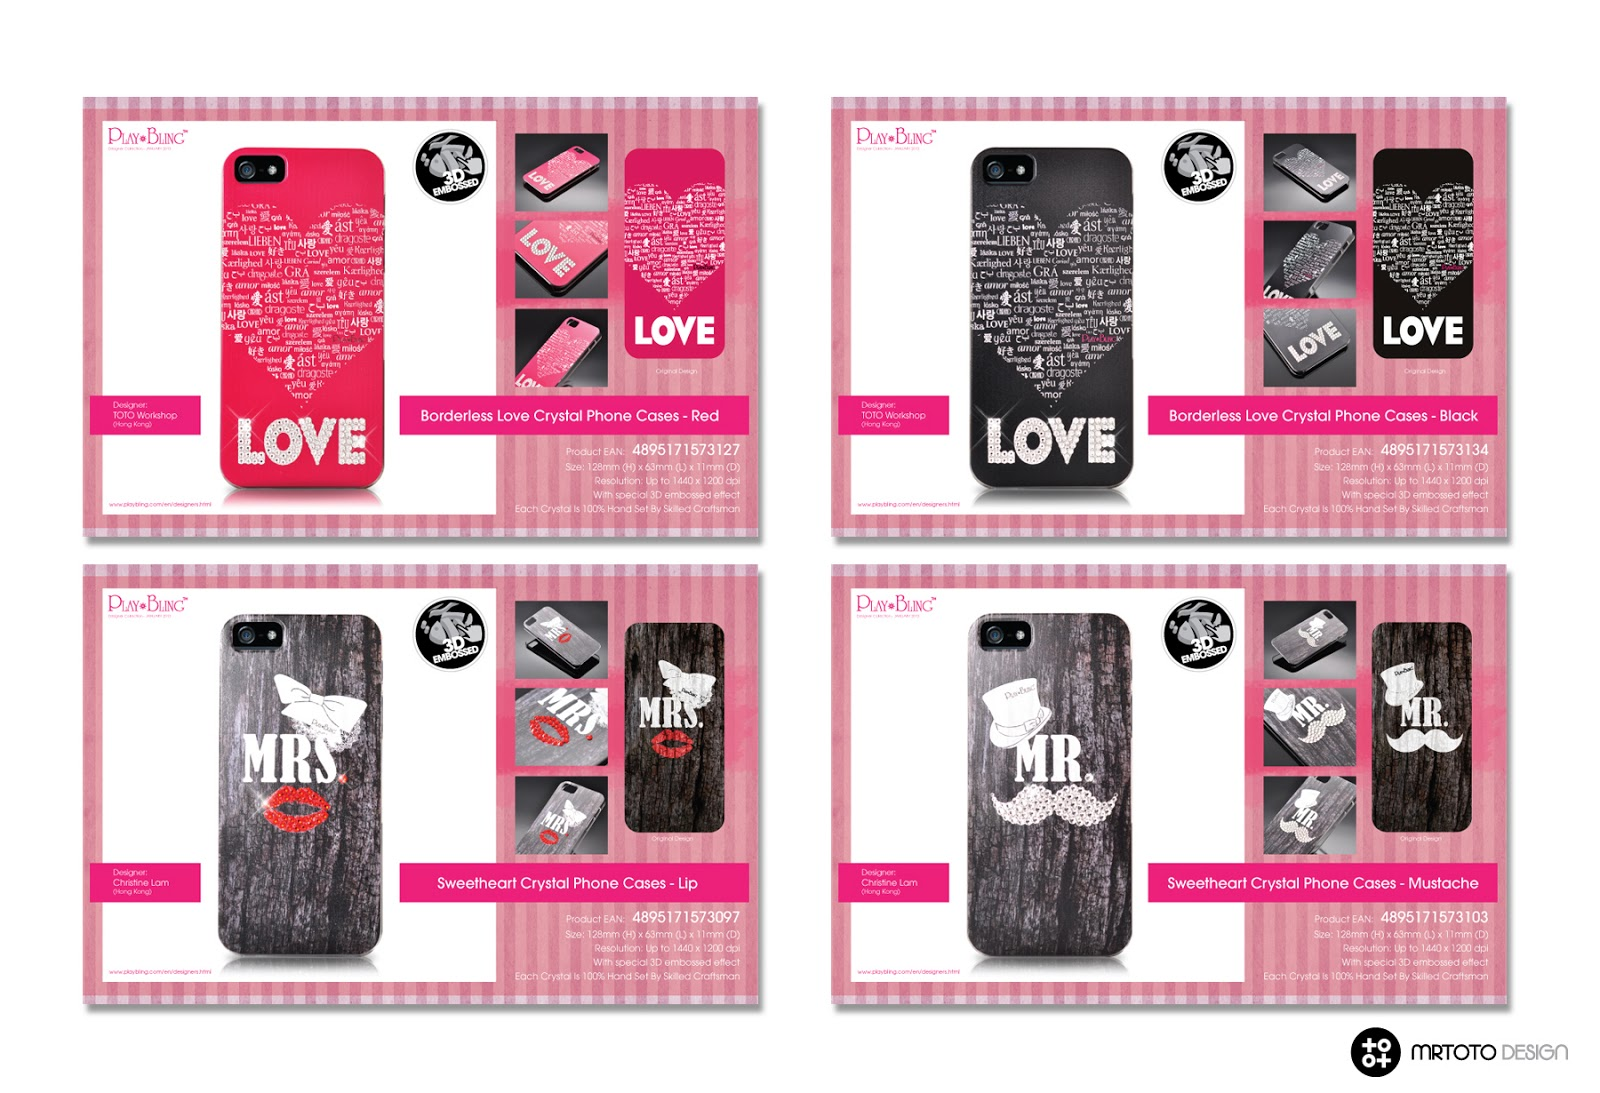 TOTO Workshop: Play Bling Catalogue Layout Design 2013 ...